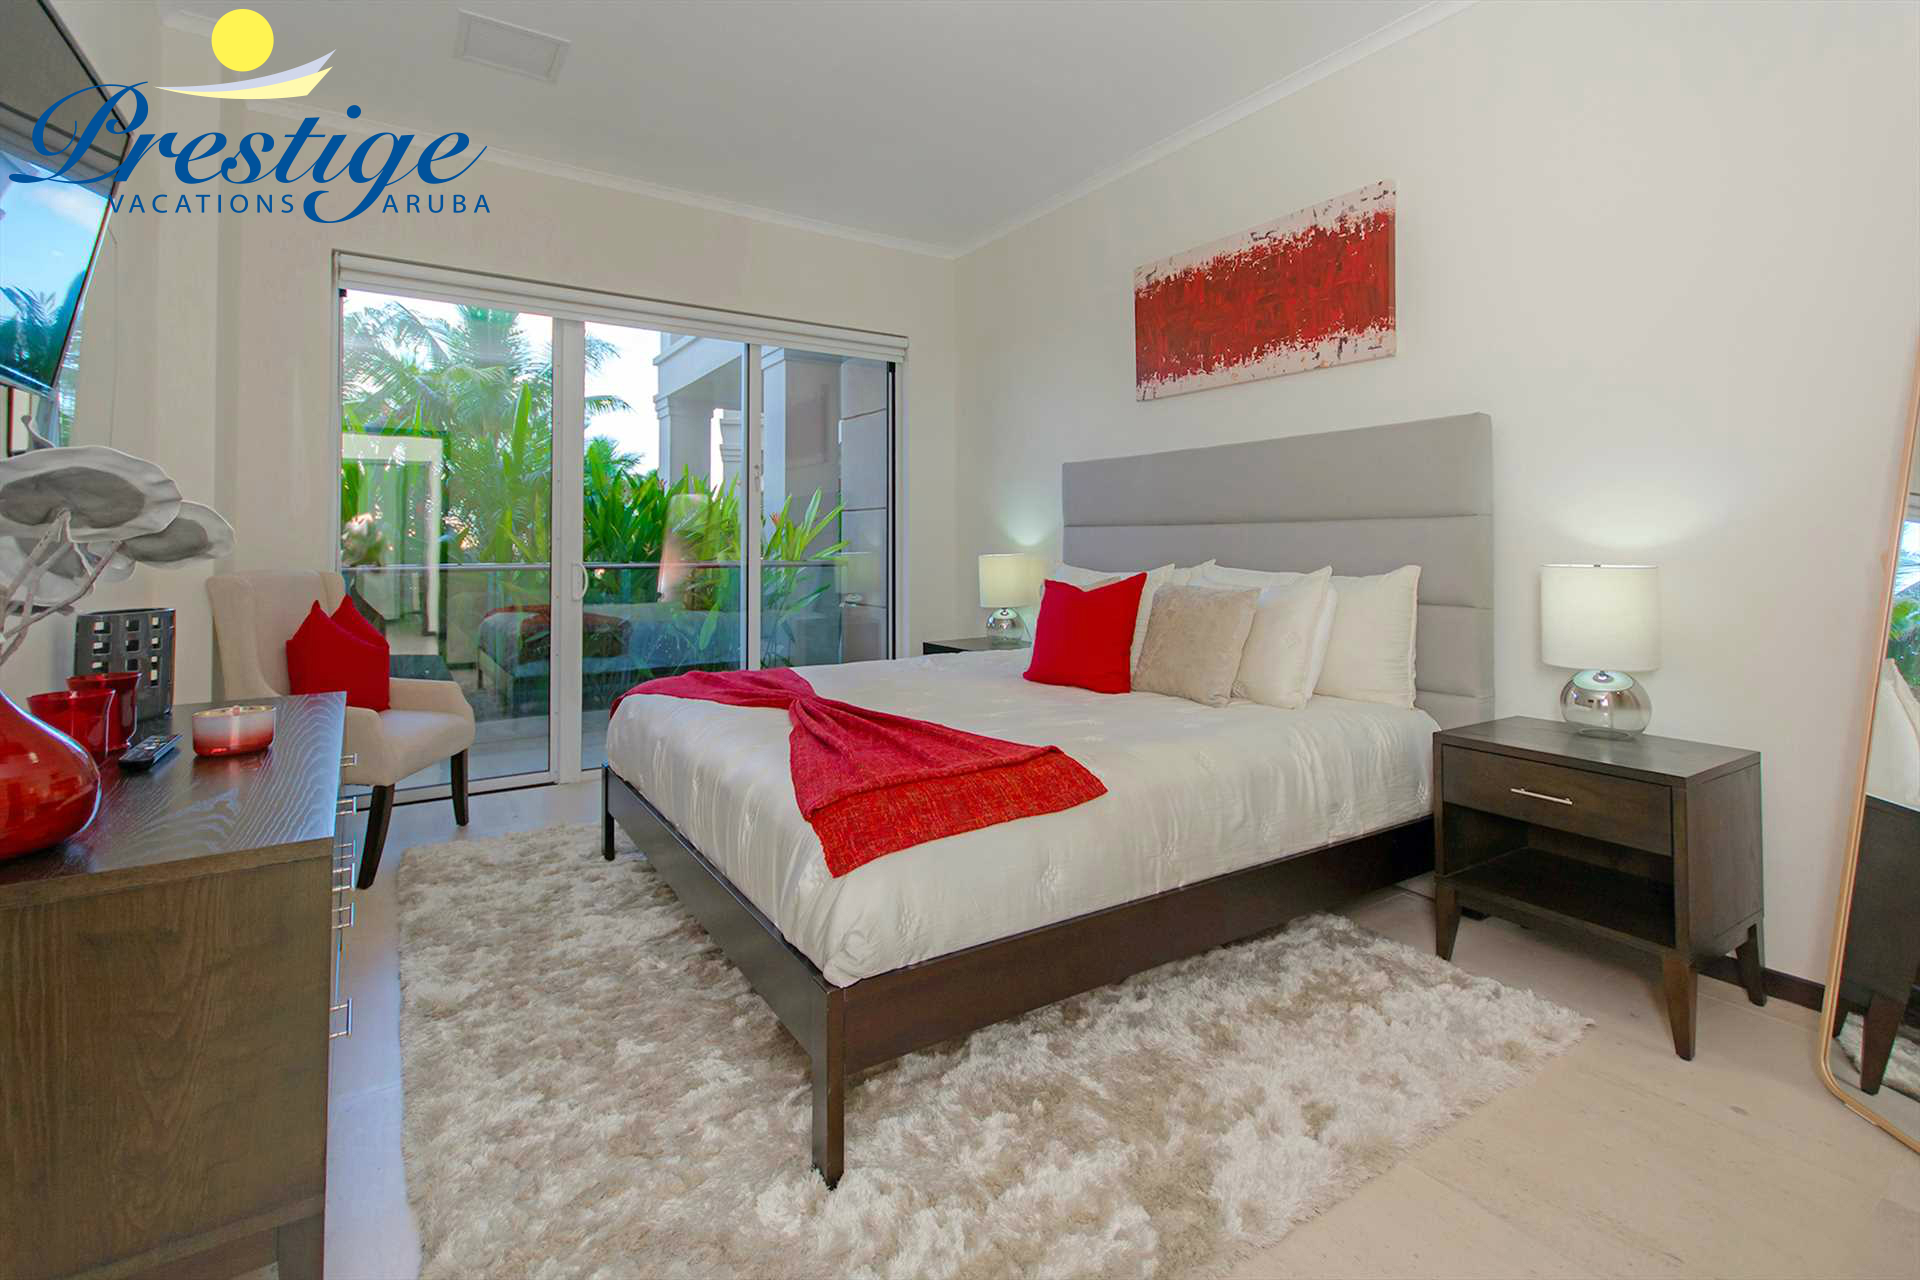 Master bedroom with king-size bed and access to the veranda